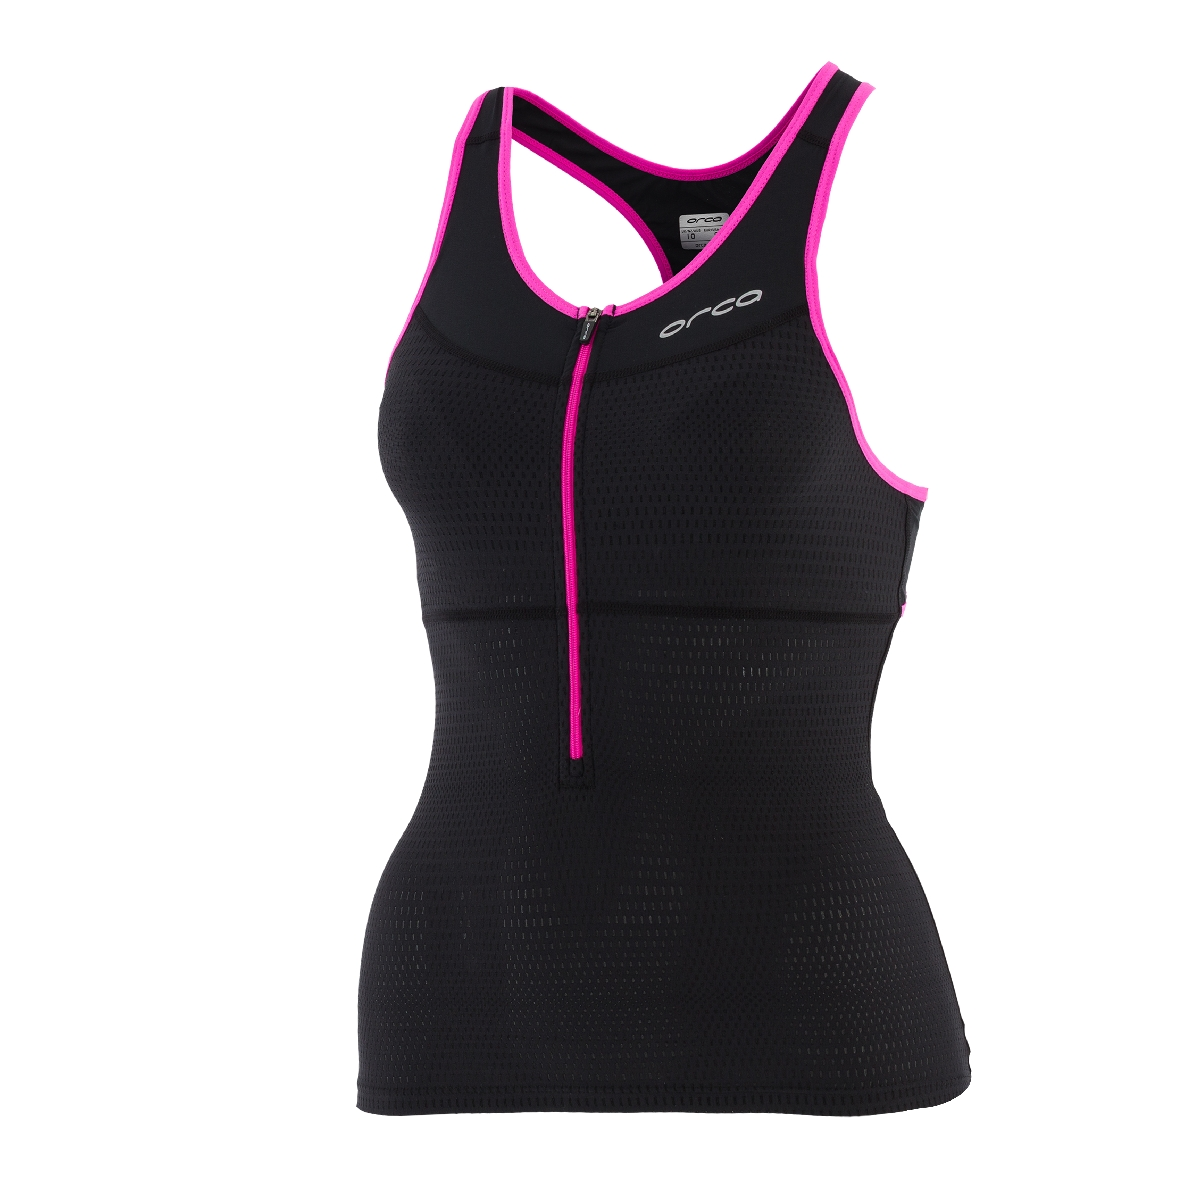 Orca 226 Support Triathlon Top Women's Size S Black PoppyPink U.S.A. & Canada